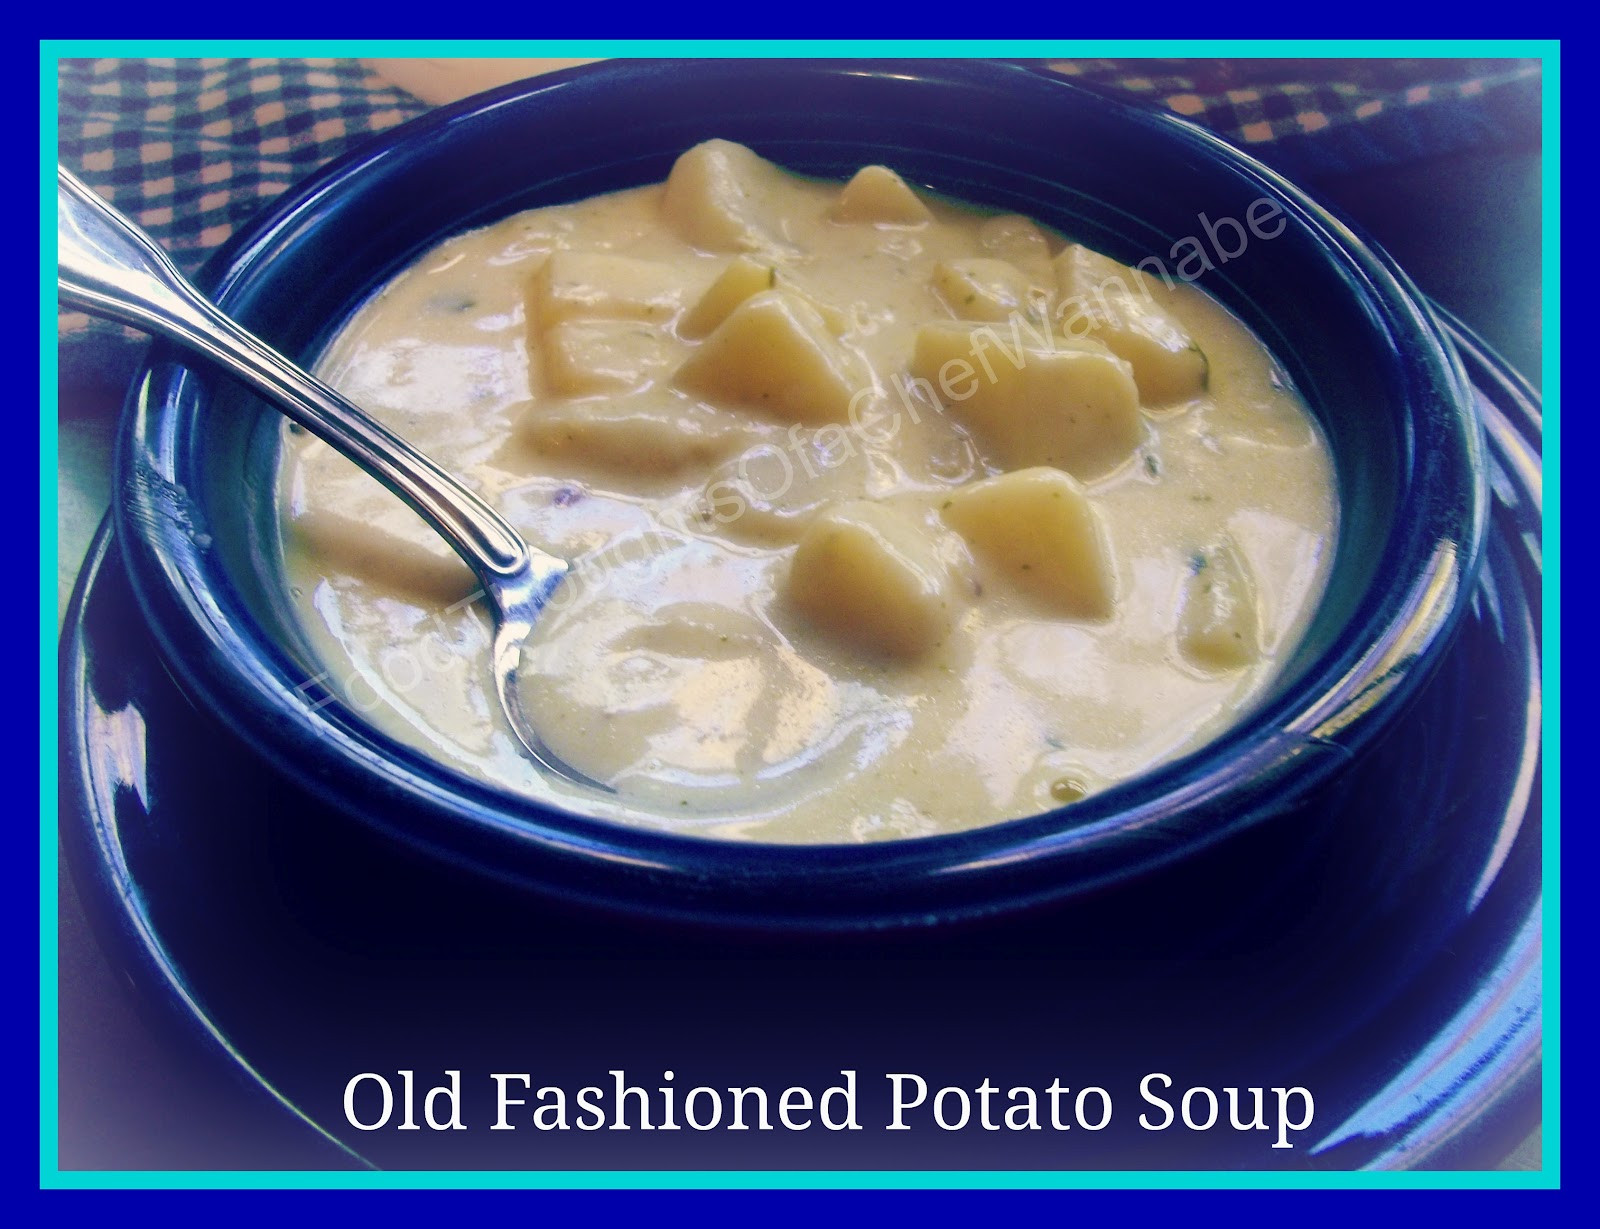 Old Fashioned Potato Soup  FoodThoughts aChefWannabe Old Fashioned Potato Soup